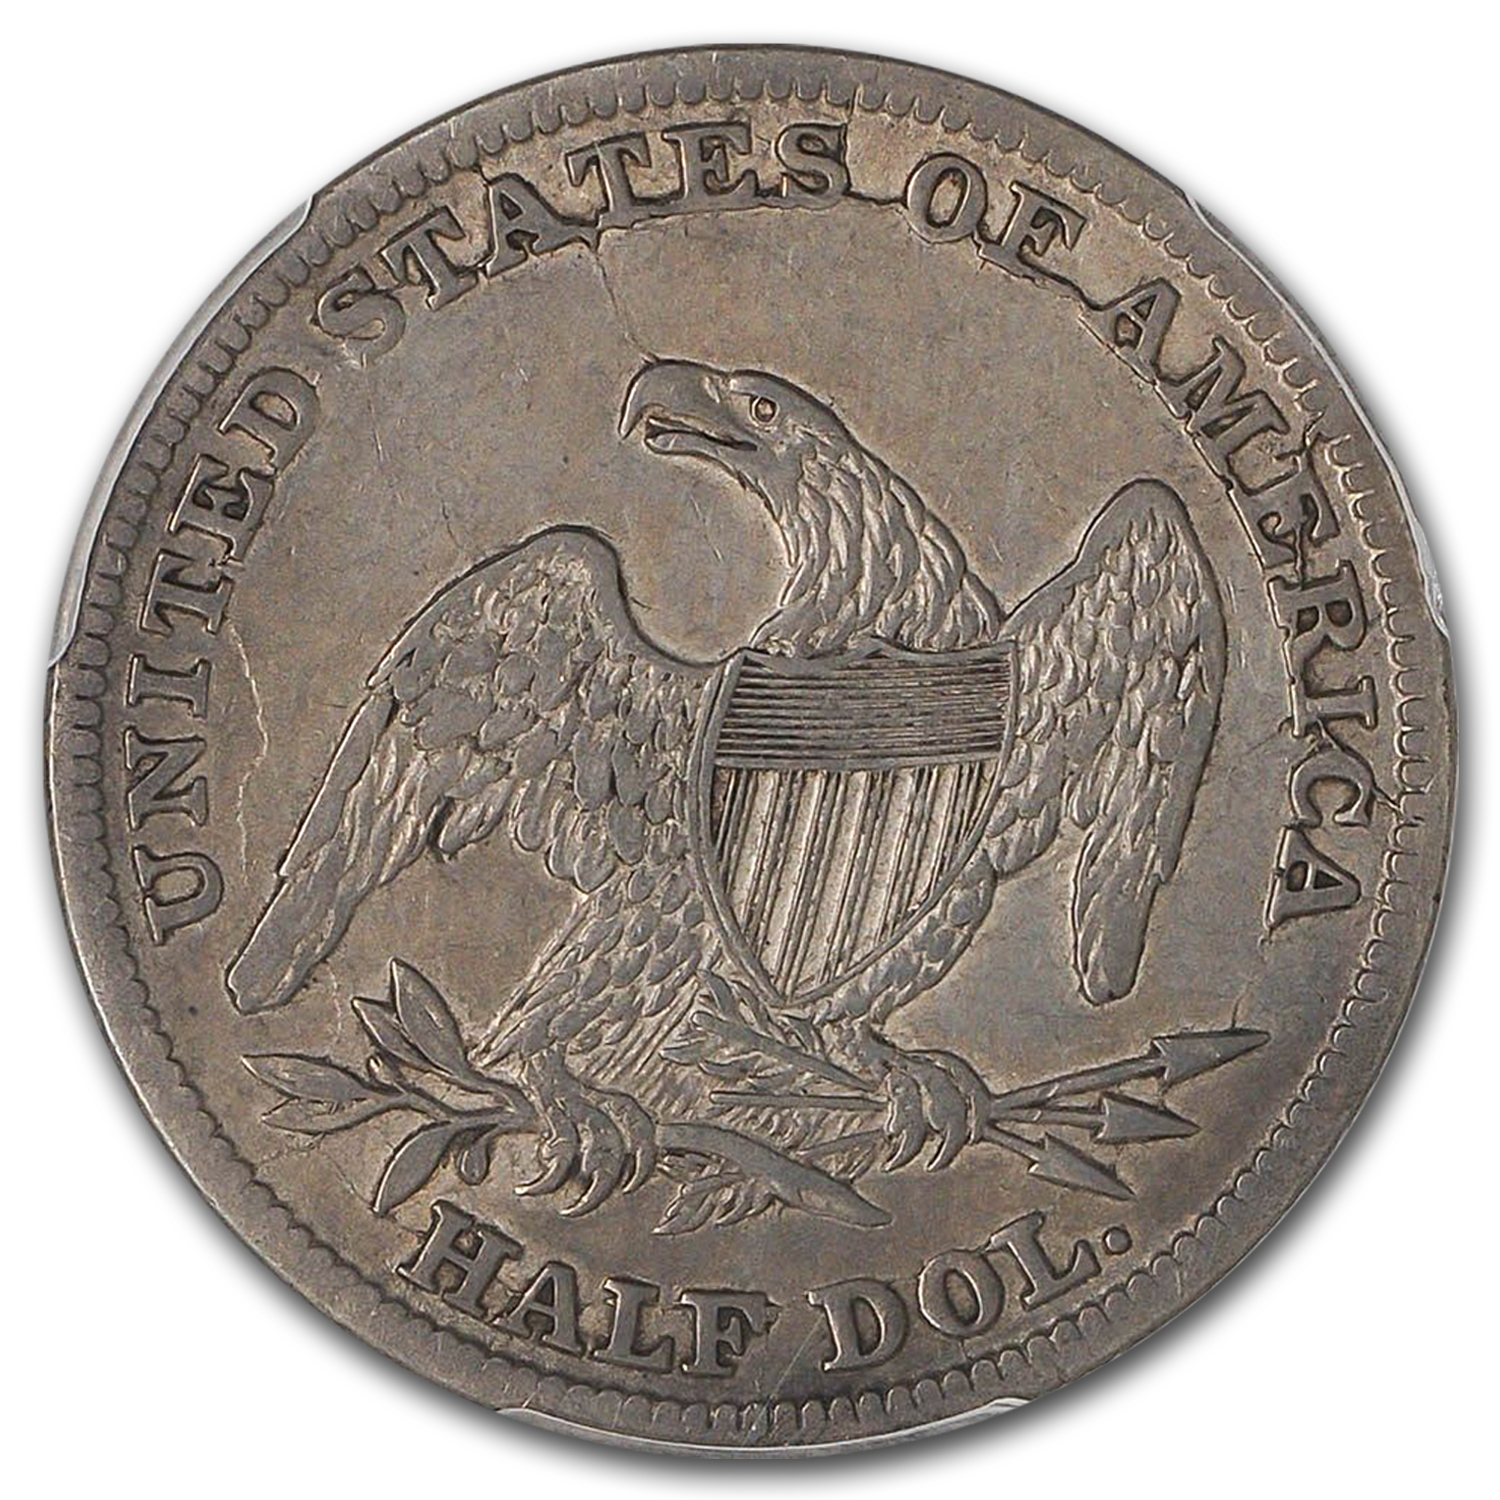 1839-O Reeded Edge Half-Dollar XF-45 PCGS